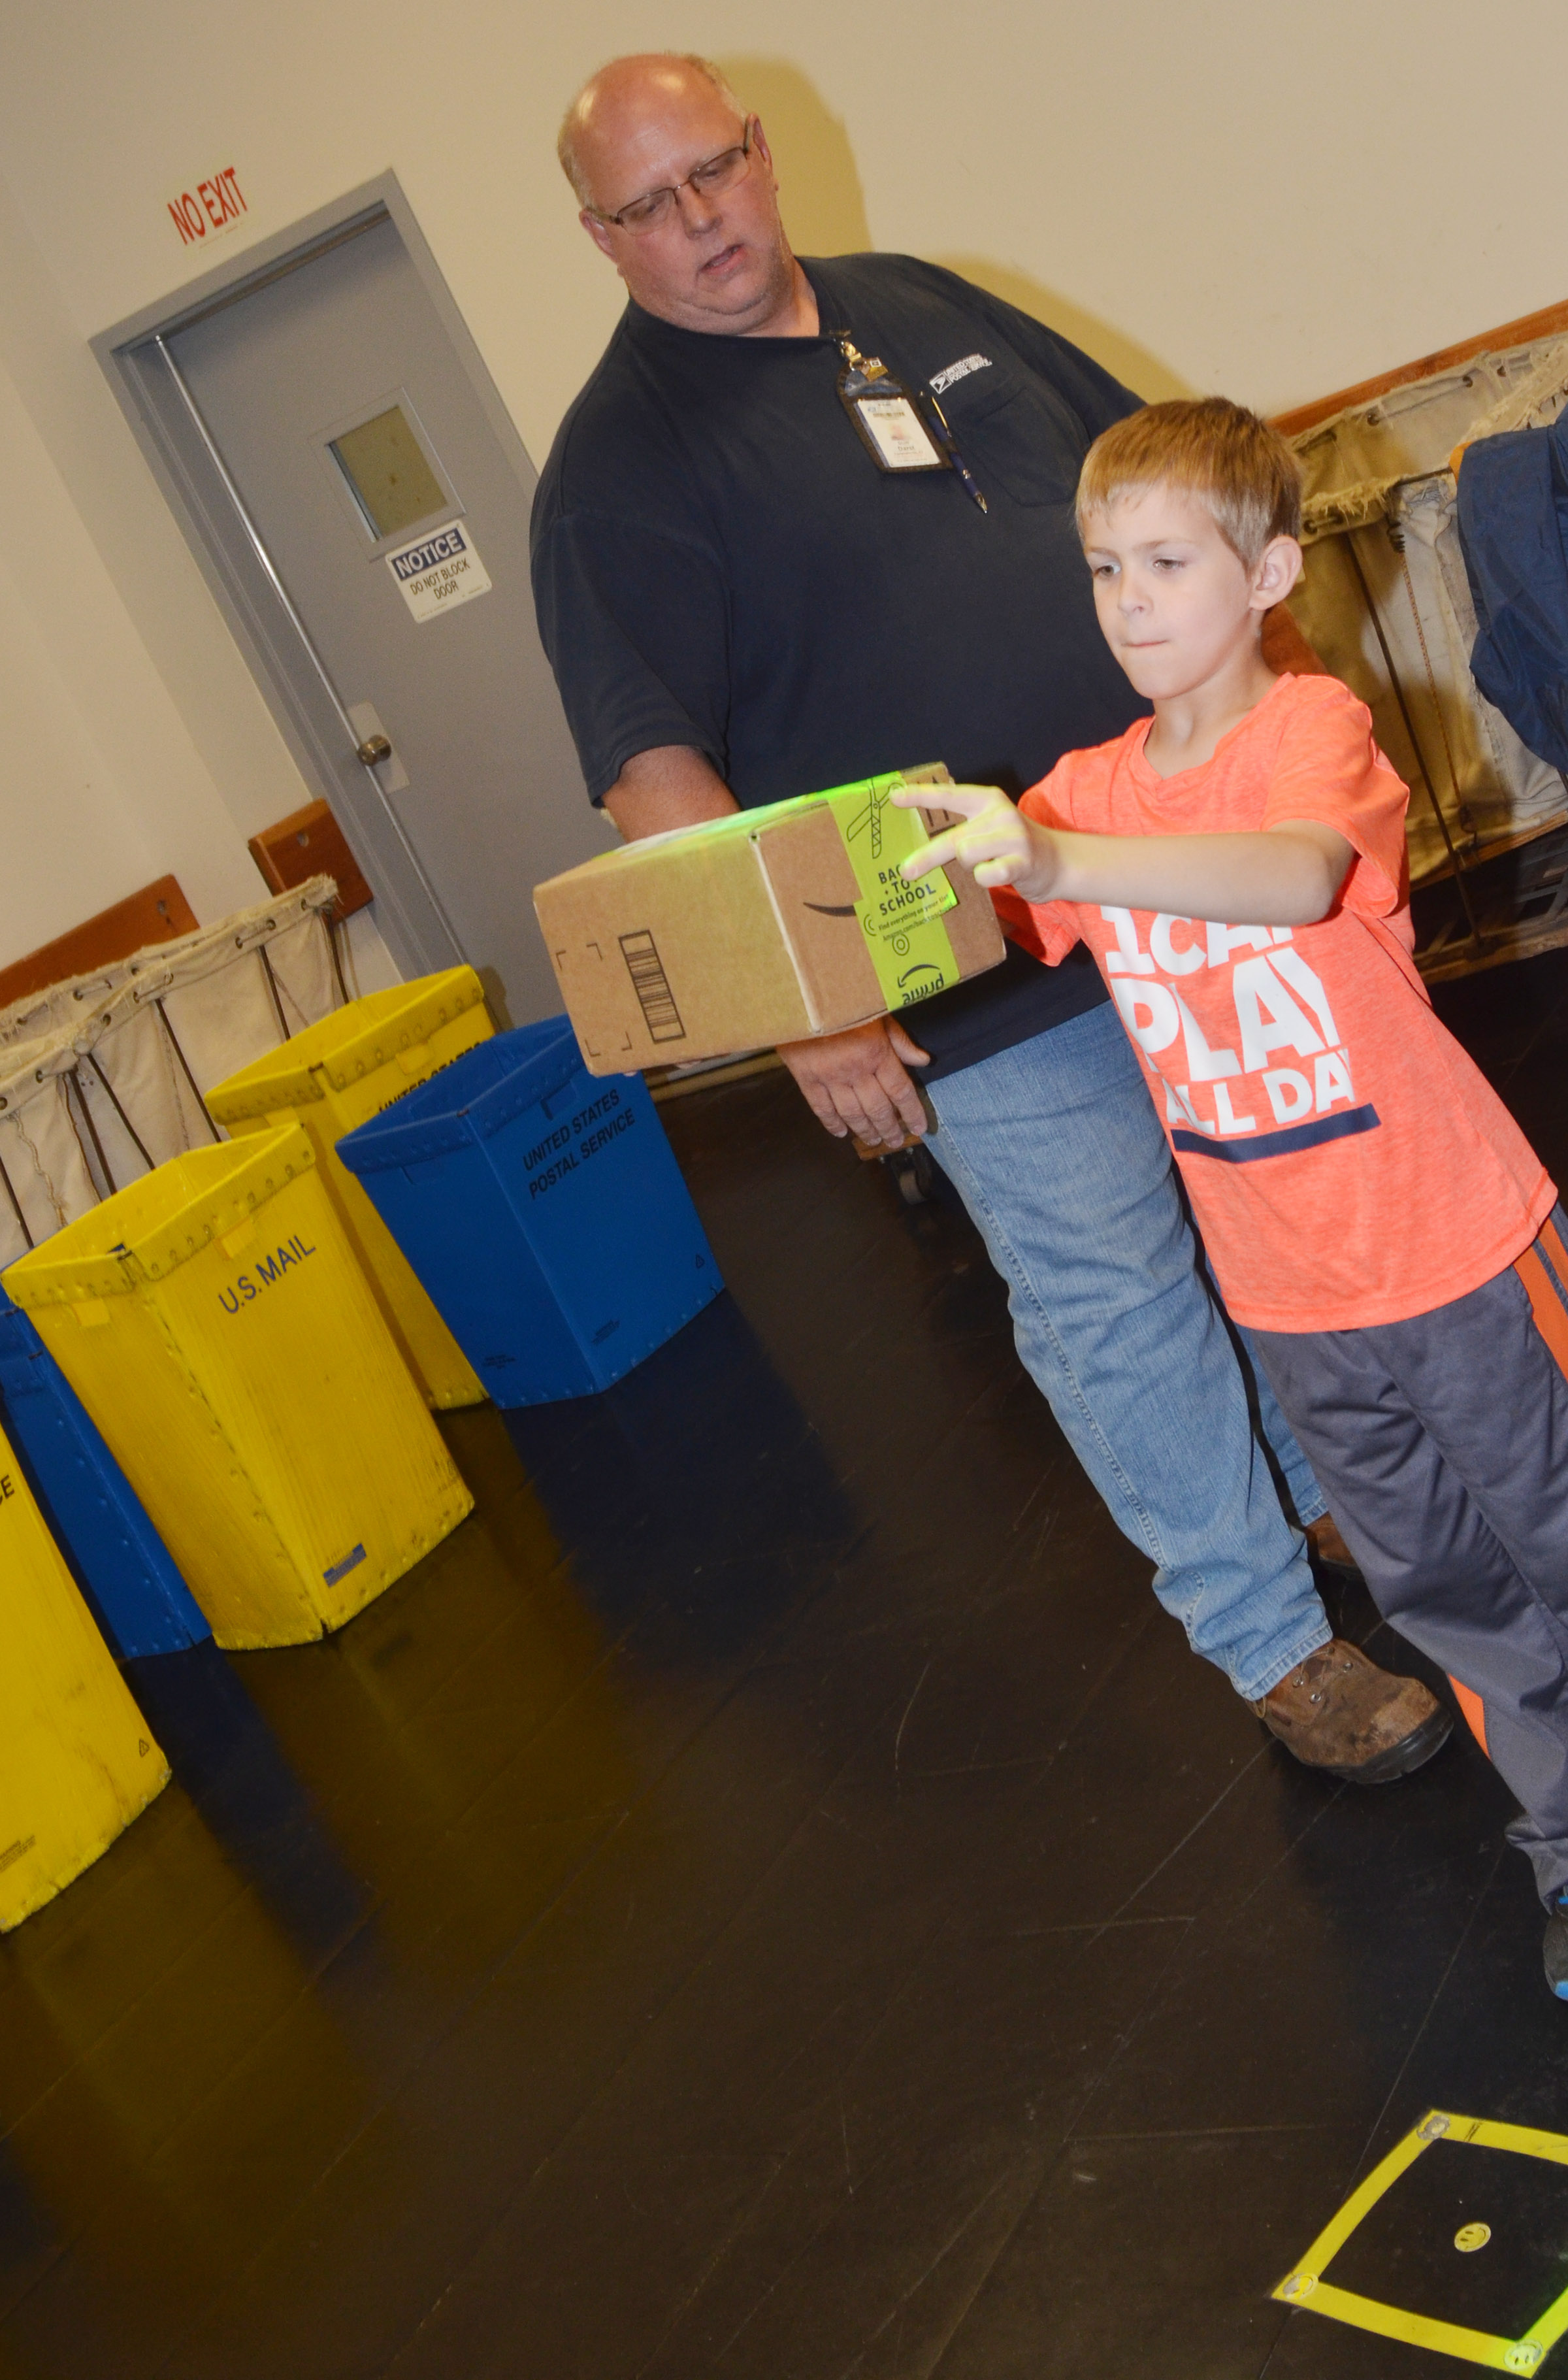 Campbellsville Post Office employee Scott Darst helps CES second-grader Logan Weddle scan a package using a robot to tell which route corresponds with the package's delivery address.